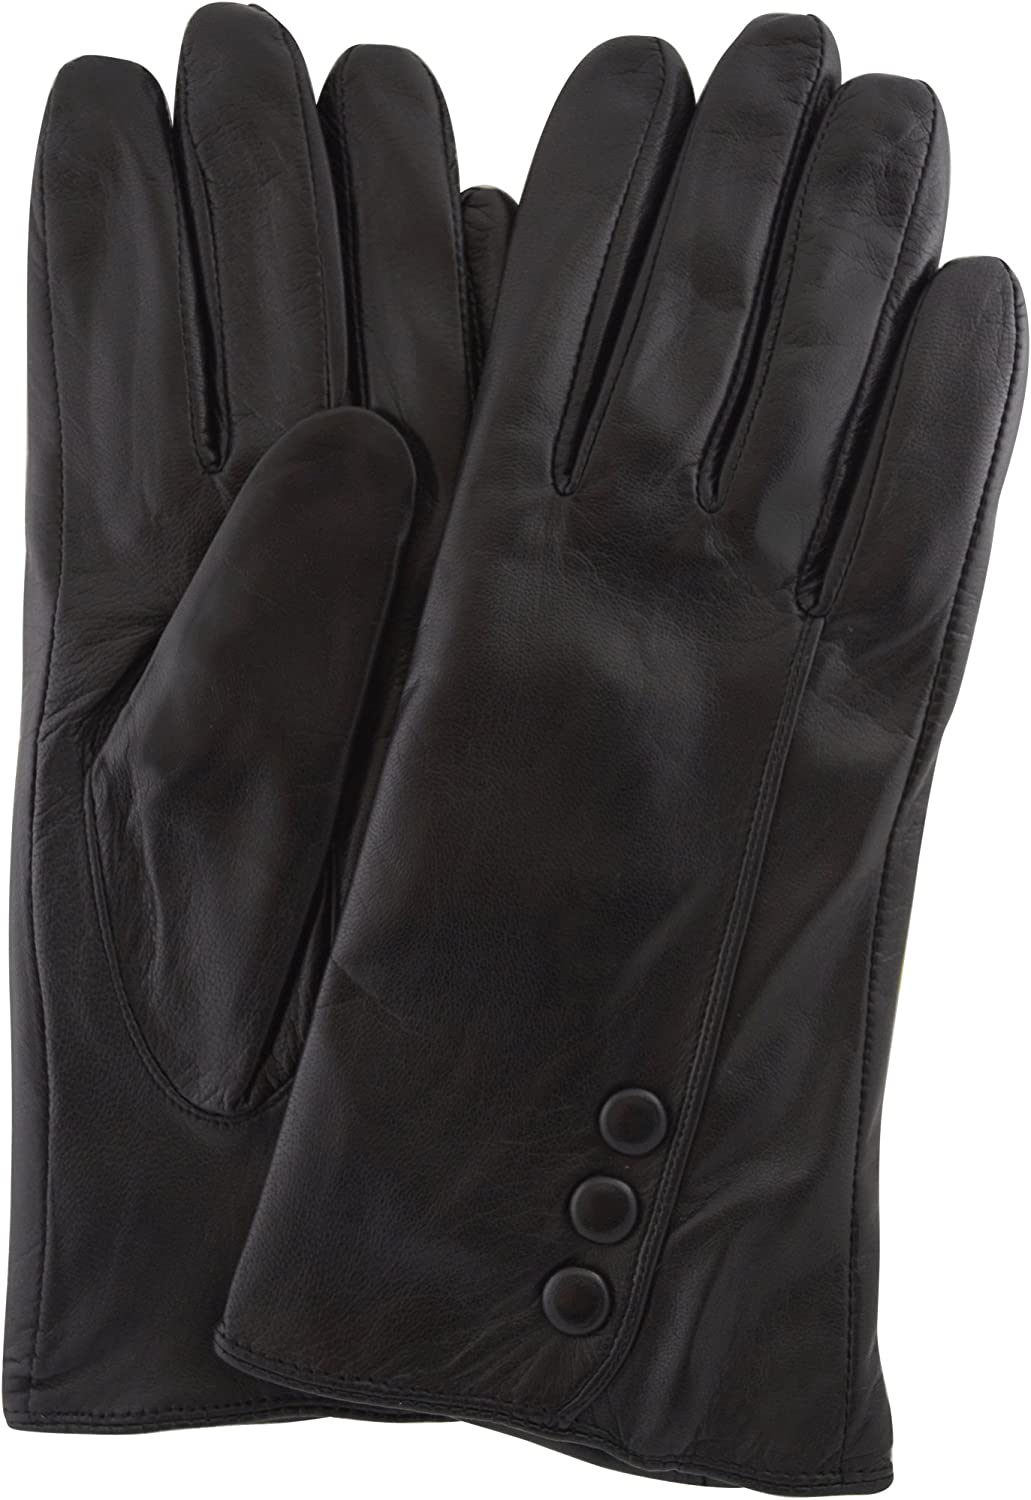 SNUGRUGS Womens Butter Soft Premium Leather Glove with Classic Triple Button Stitch Detail /& Warm Fleece Lining